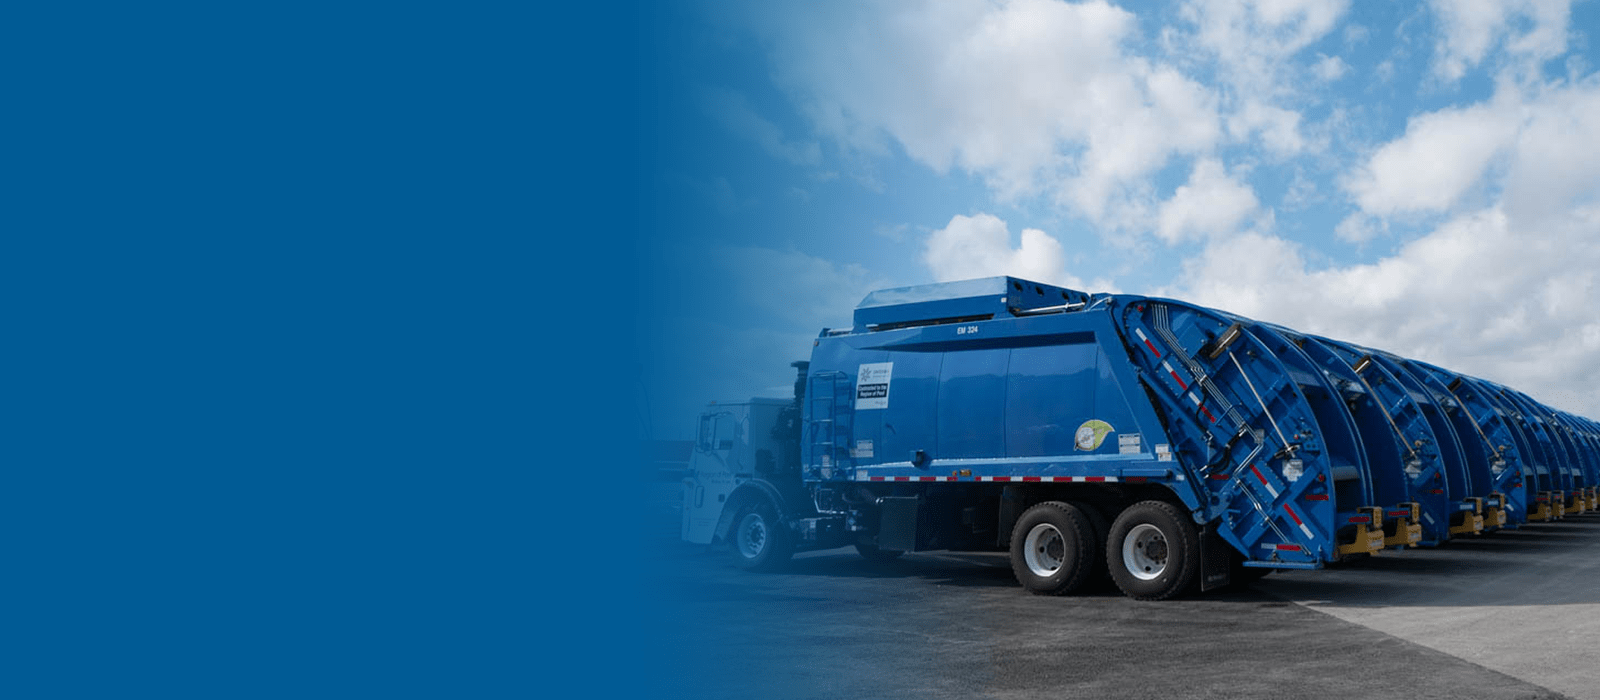 Leading the way with compressed natural gas in the waste and recycling industry.